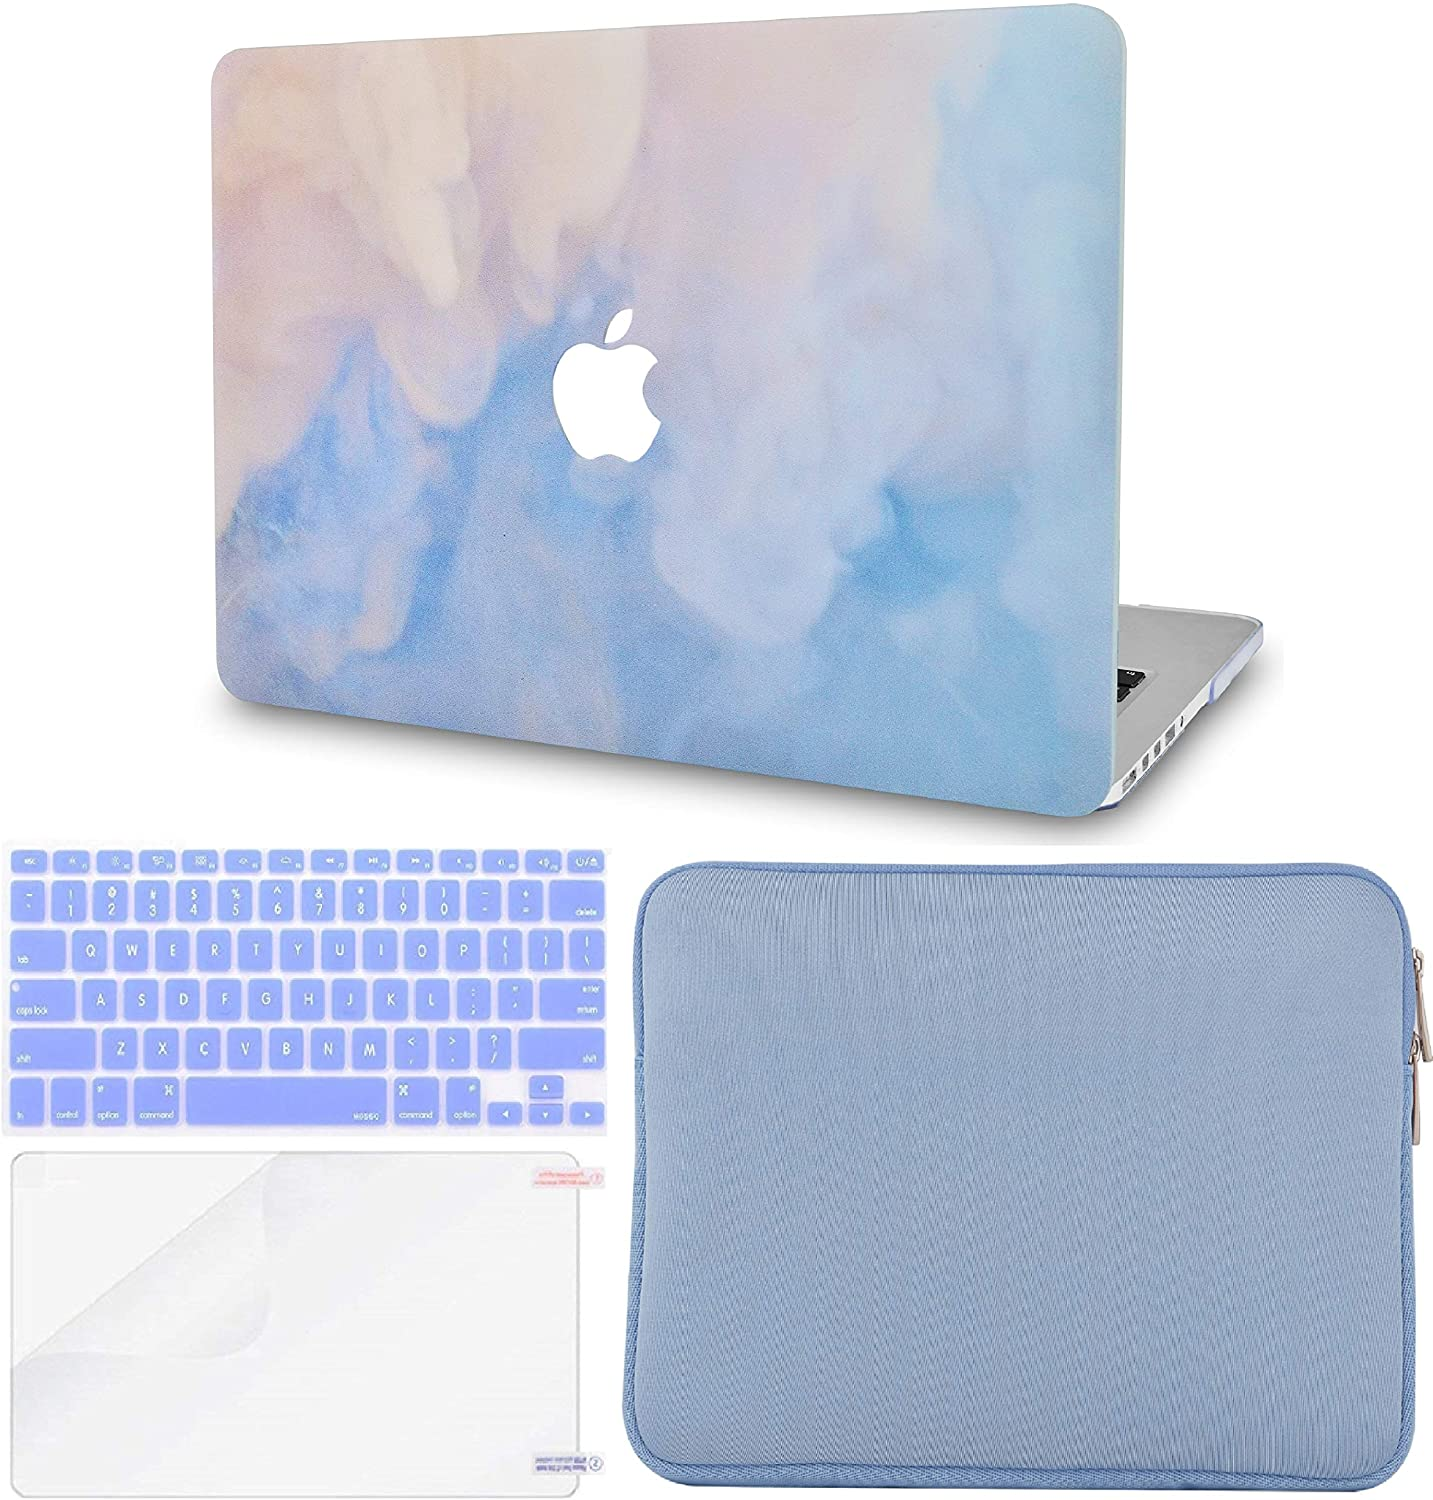 LuvCase 4 in 1 Laptop Case for MacBook Air 13 Inch A1466 / A1369 (No Touch ID)(2010-2017) Hard Shell Cover, Slim Sleeve, Keyboard Cover & Screen Protector (Blue Mist)